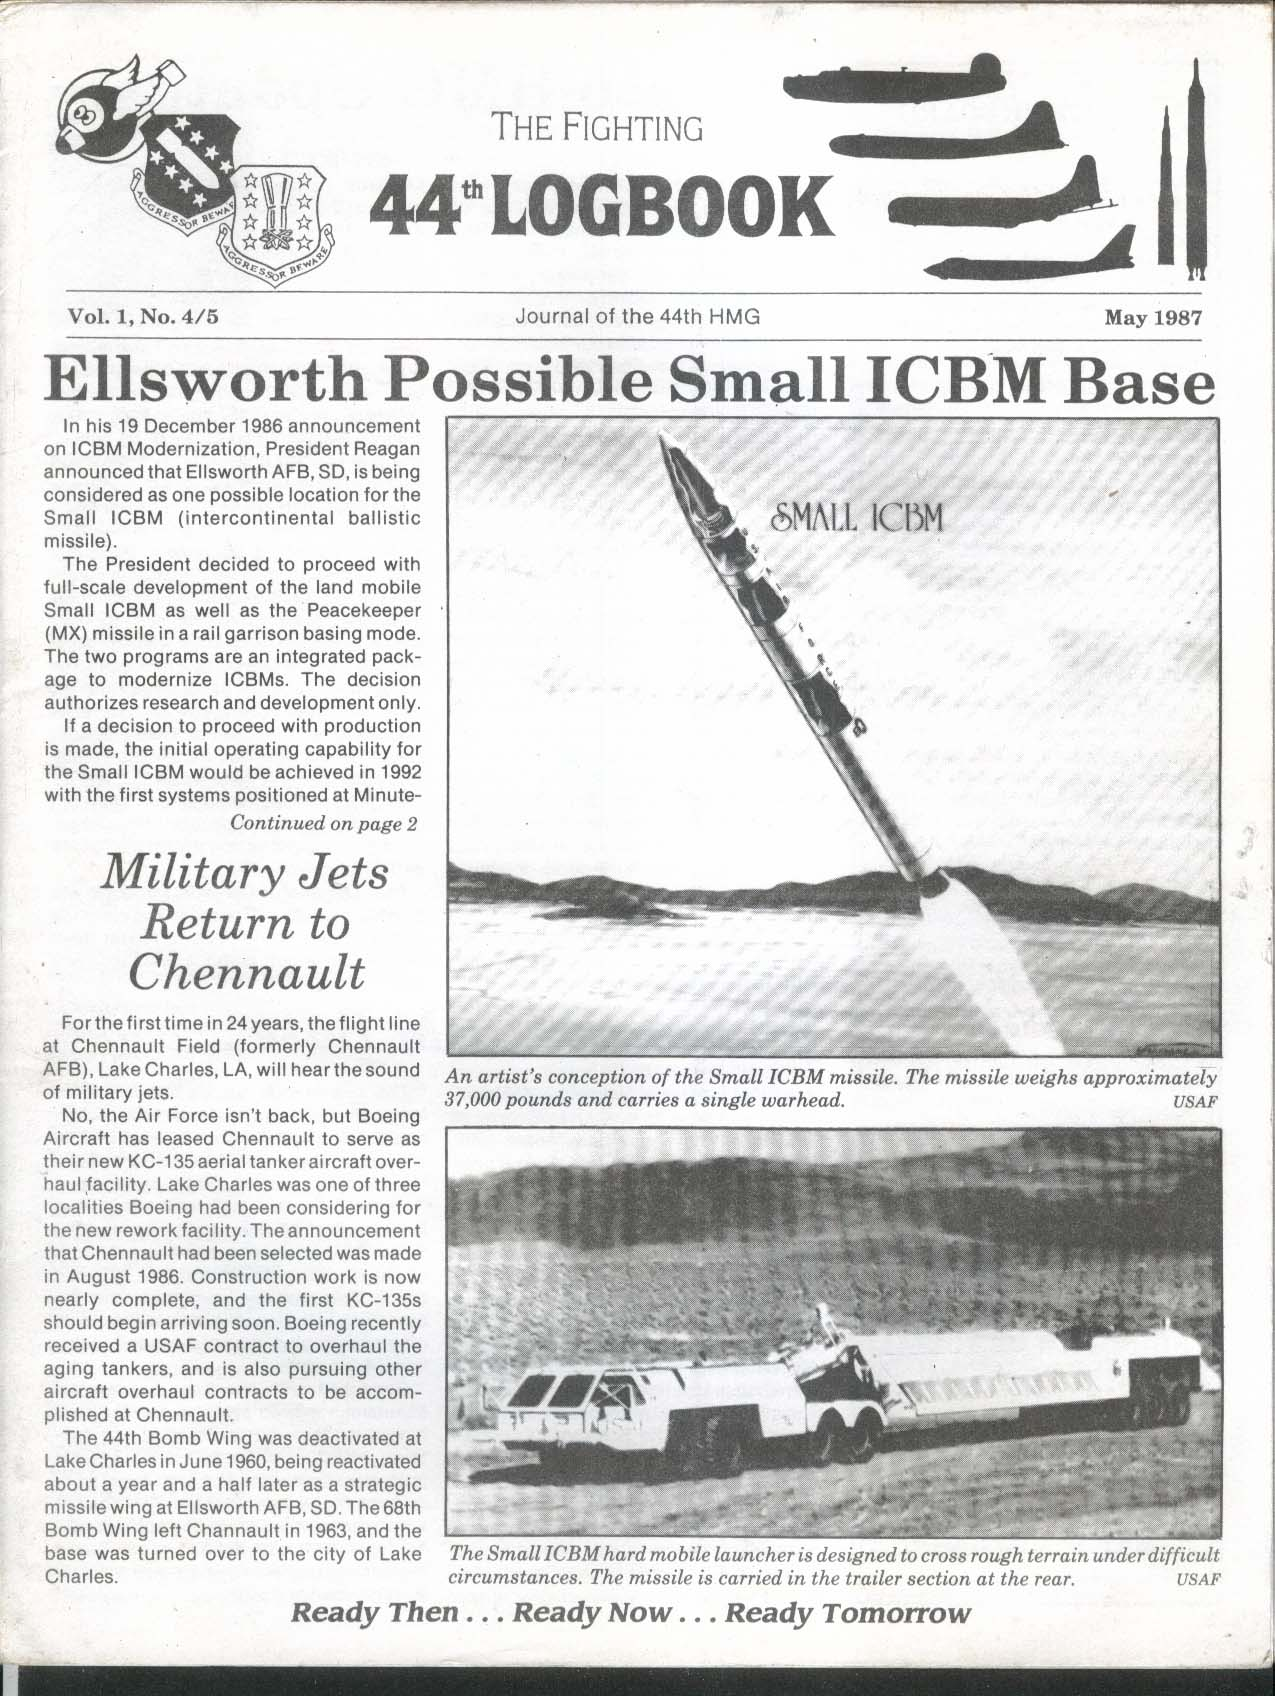 Fighting 44th Logbook Ellsworth Small ICBM 5 1987